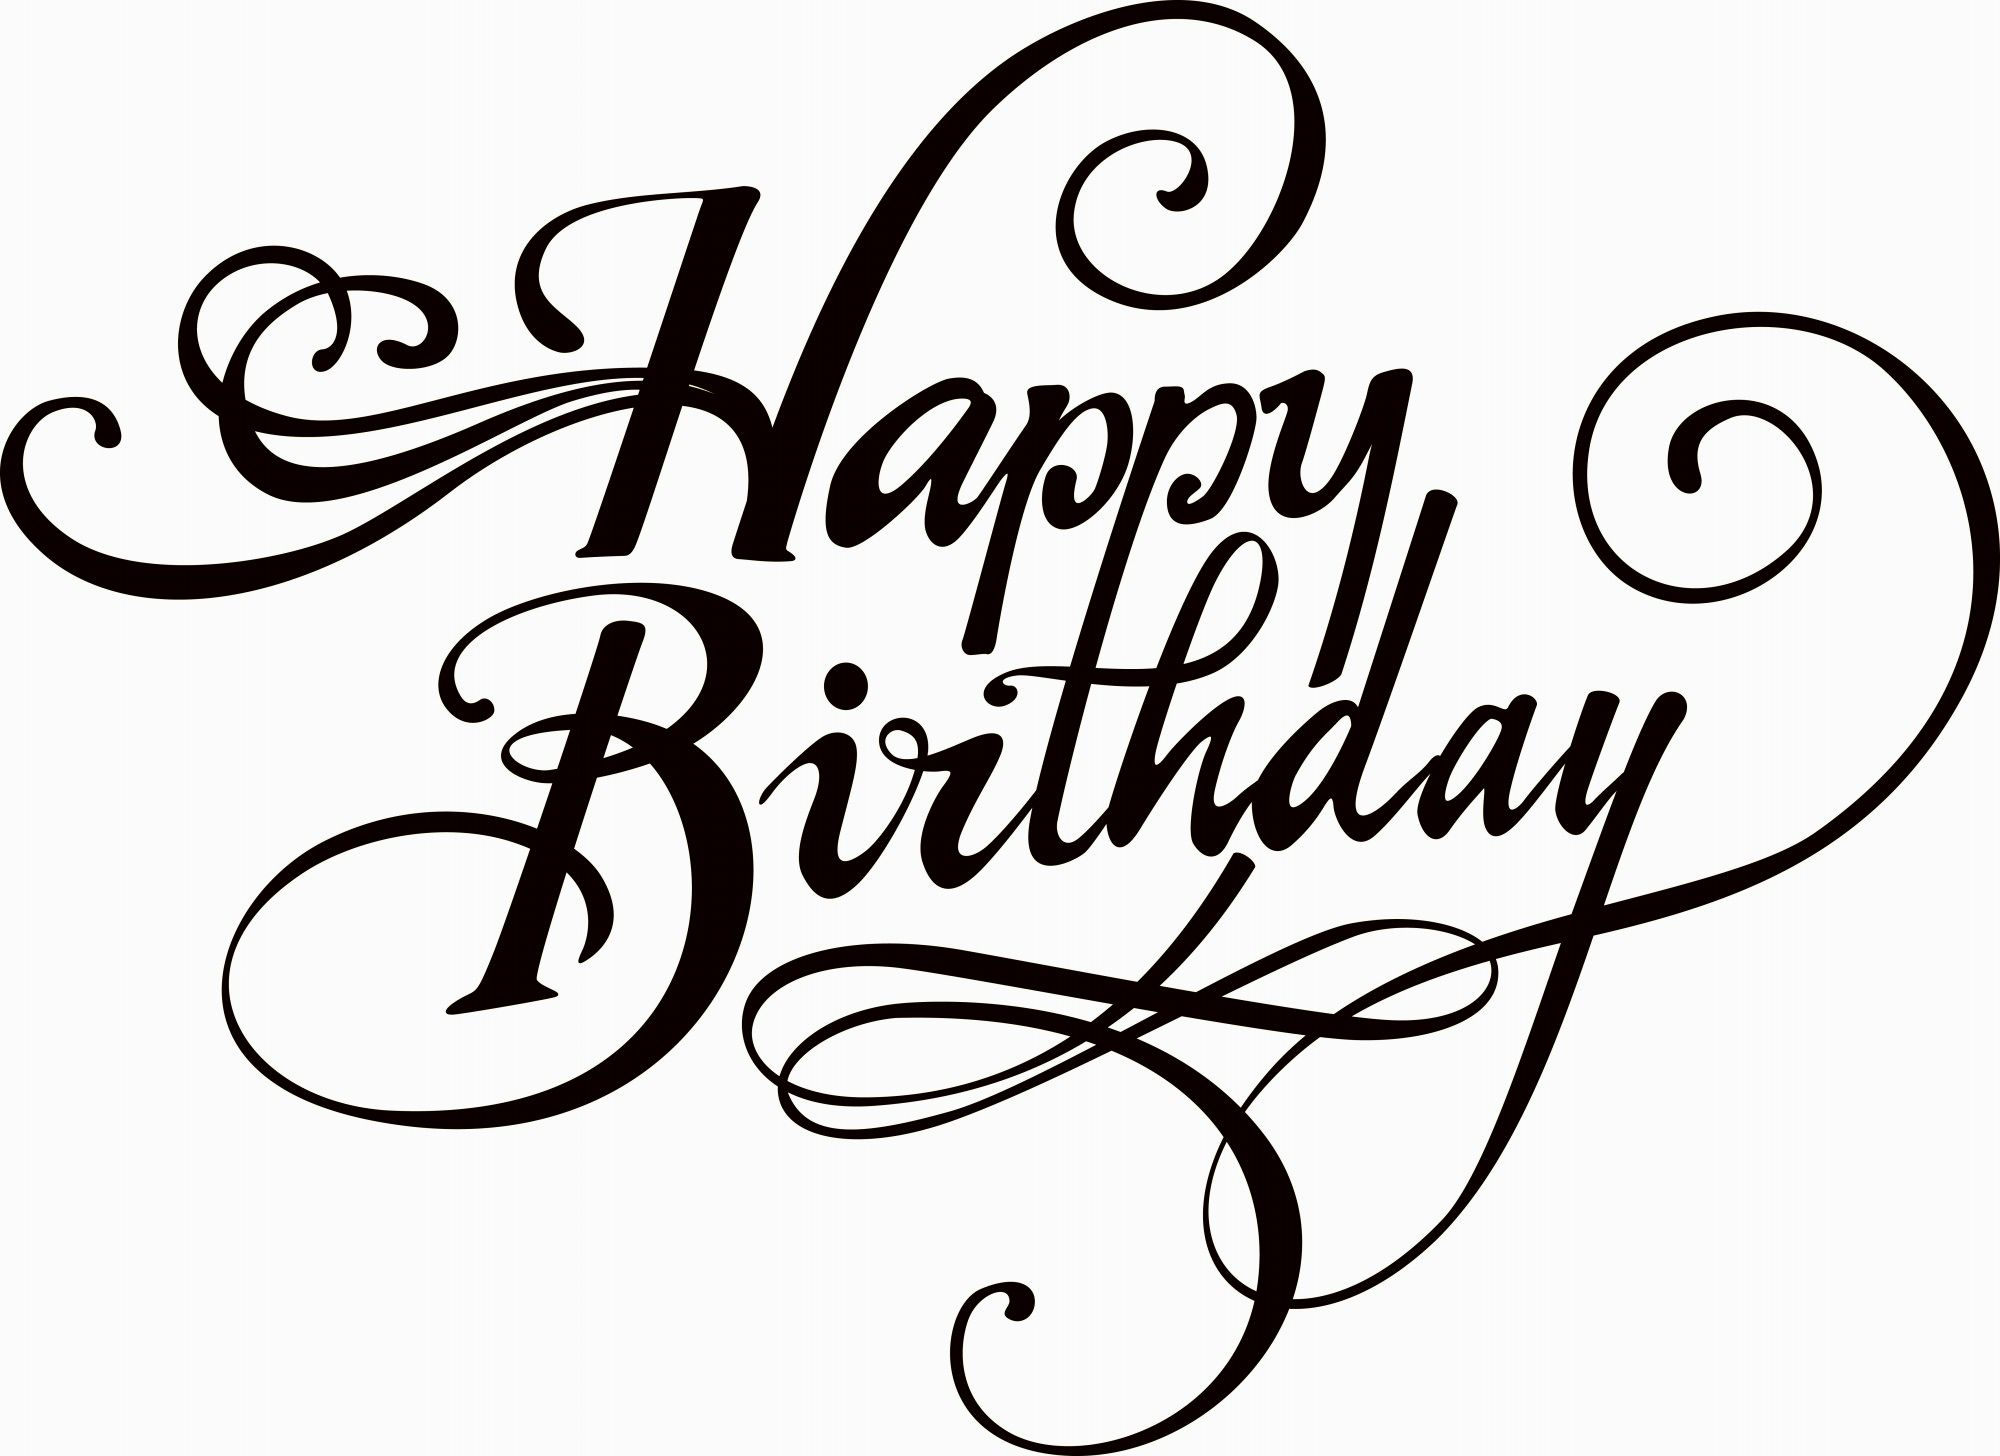 pictures to draw on birthday cards ; luxury-how-to-draw-a-birthday-card-design-modern-how-to-draw-a-birthday-card-design